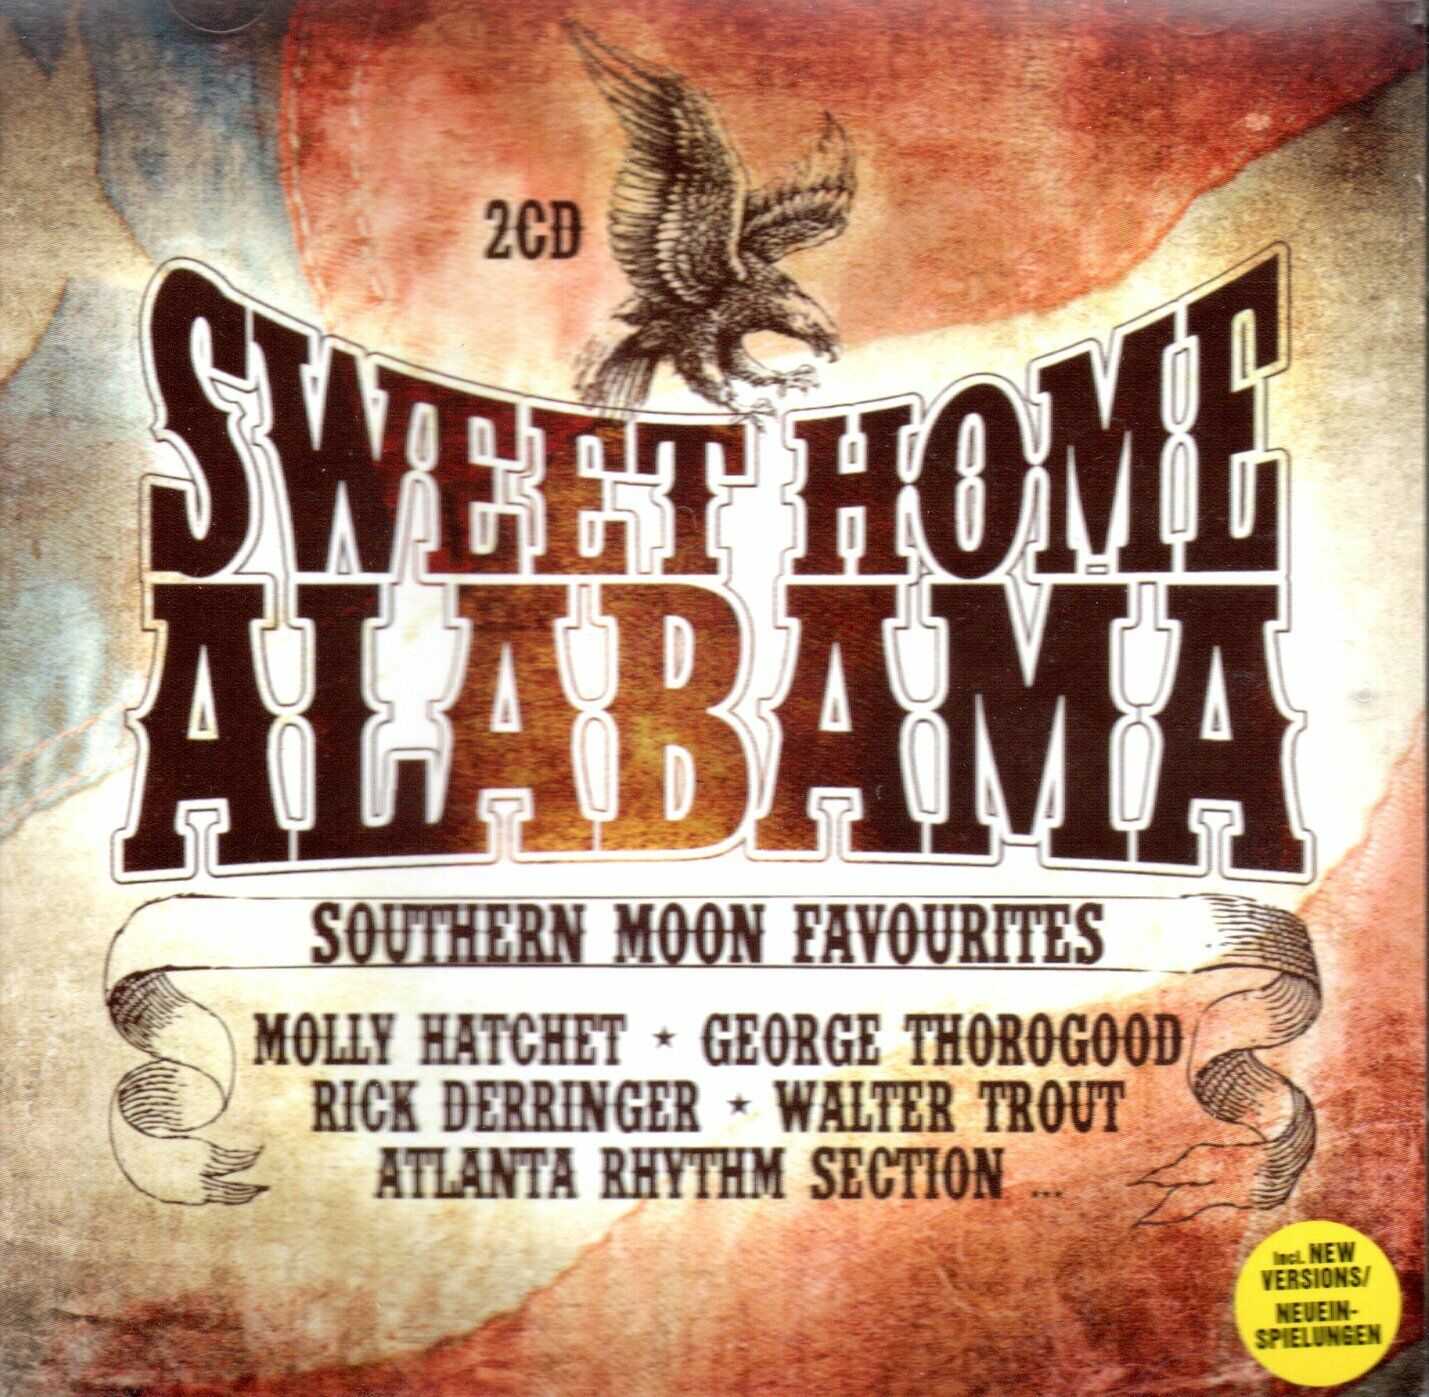 VA - Sweet Home Alabama - Southern Moon Favourites 2CD Trout, Molly Hatchet....